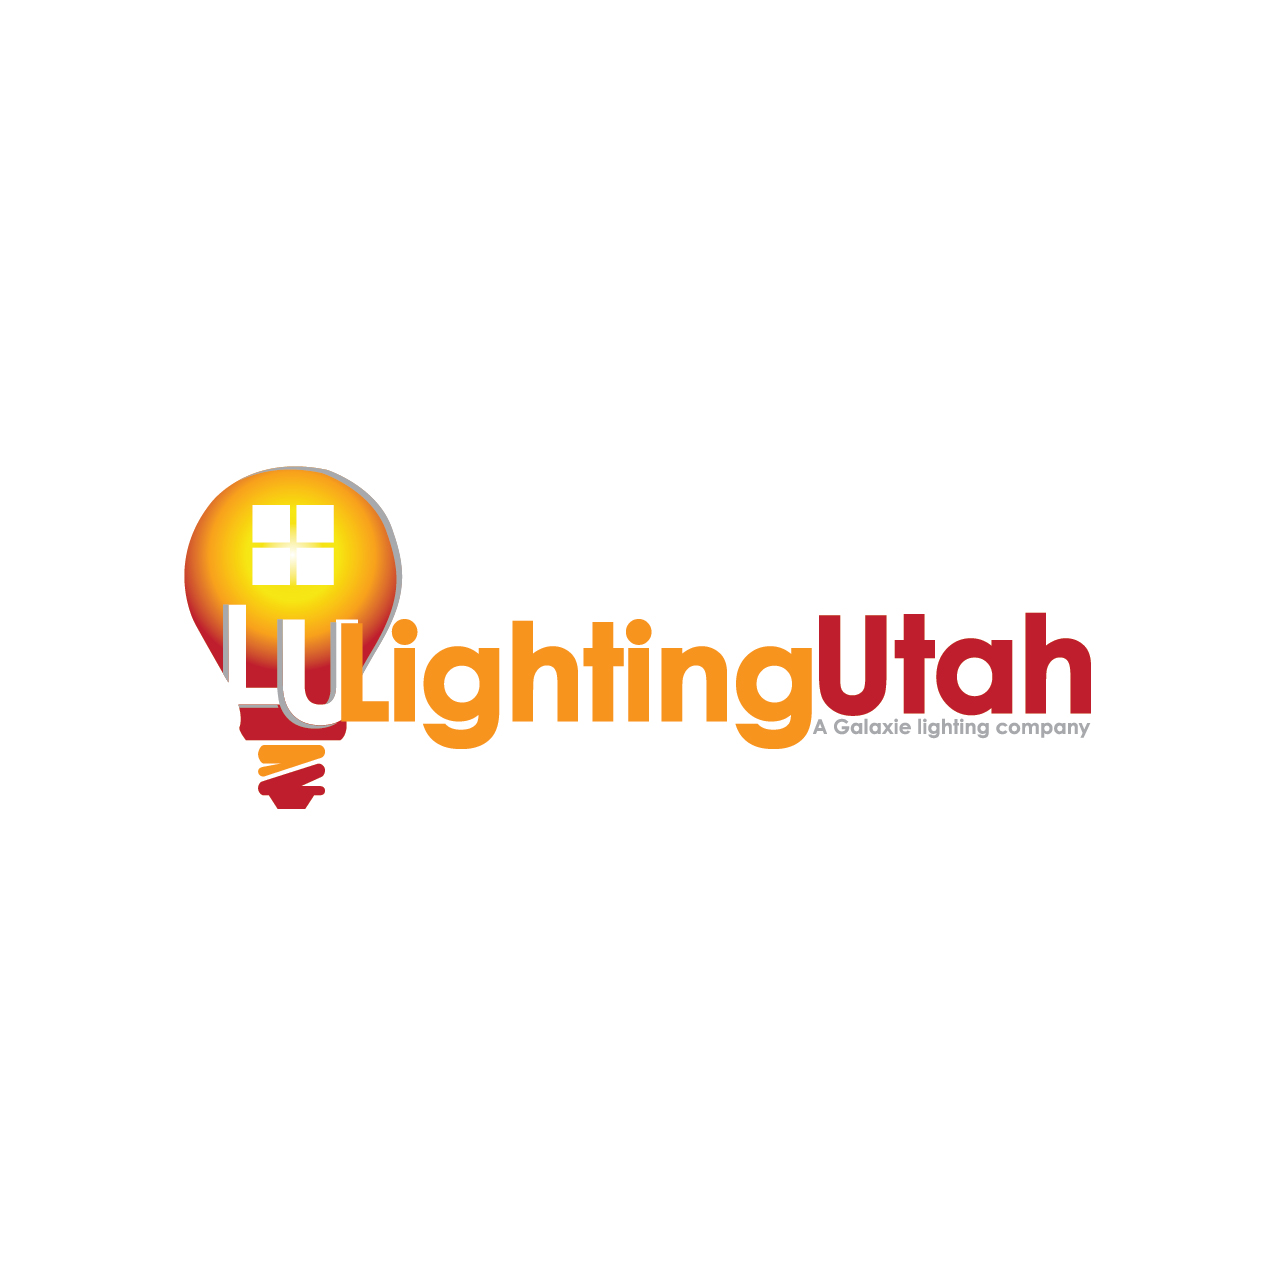 Logo Design by stormbighit - Entry No. 89 in the Logo Design Contest Imaginative Logo Design for Lighting Utah. A Galaxie lighting company.